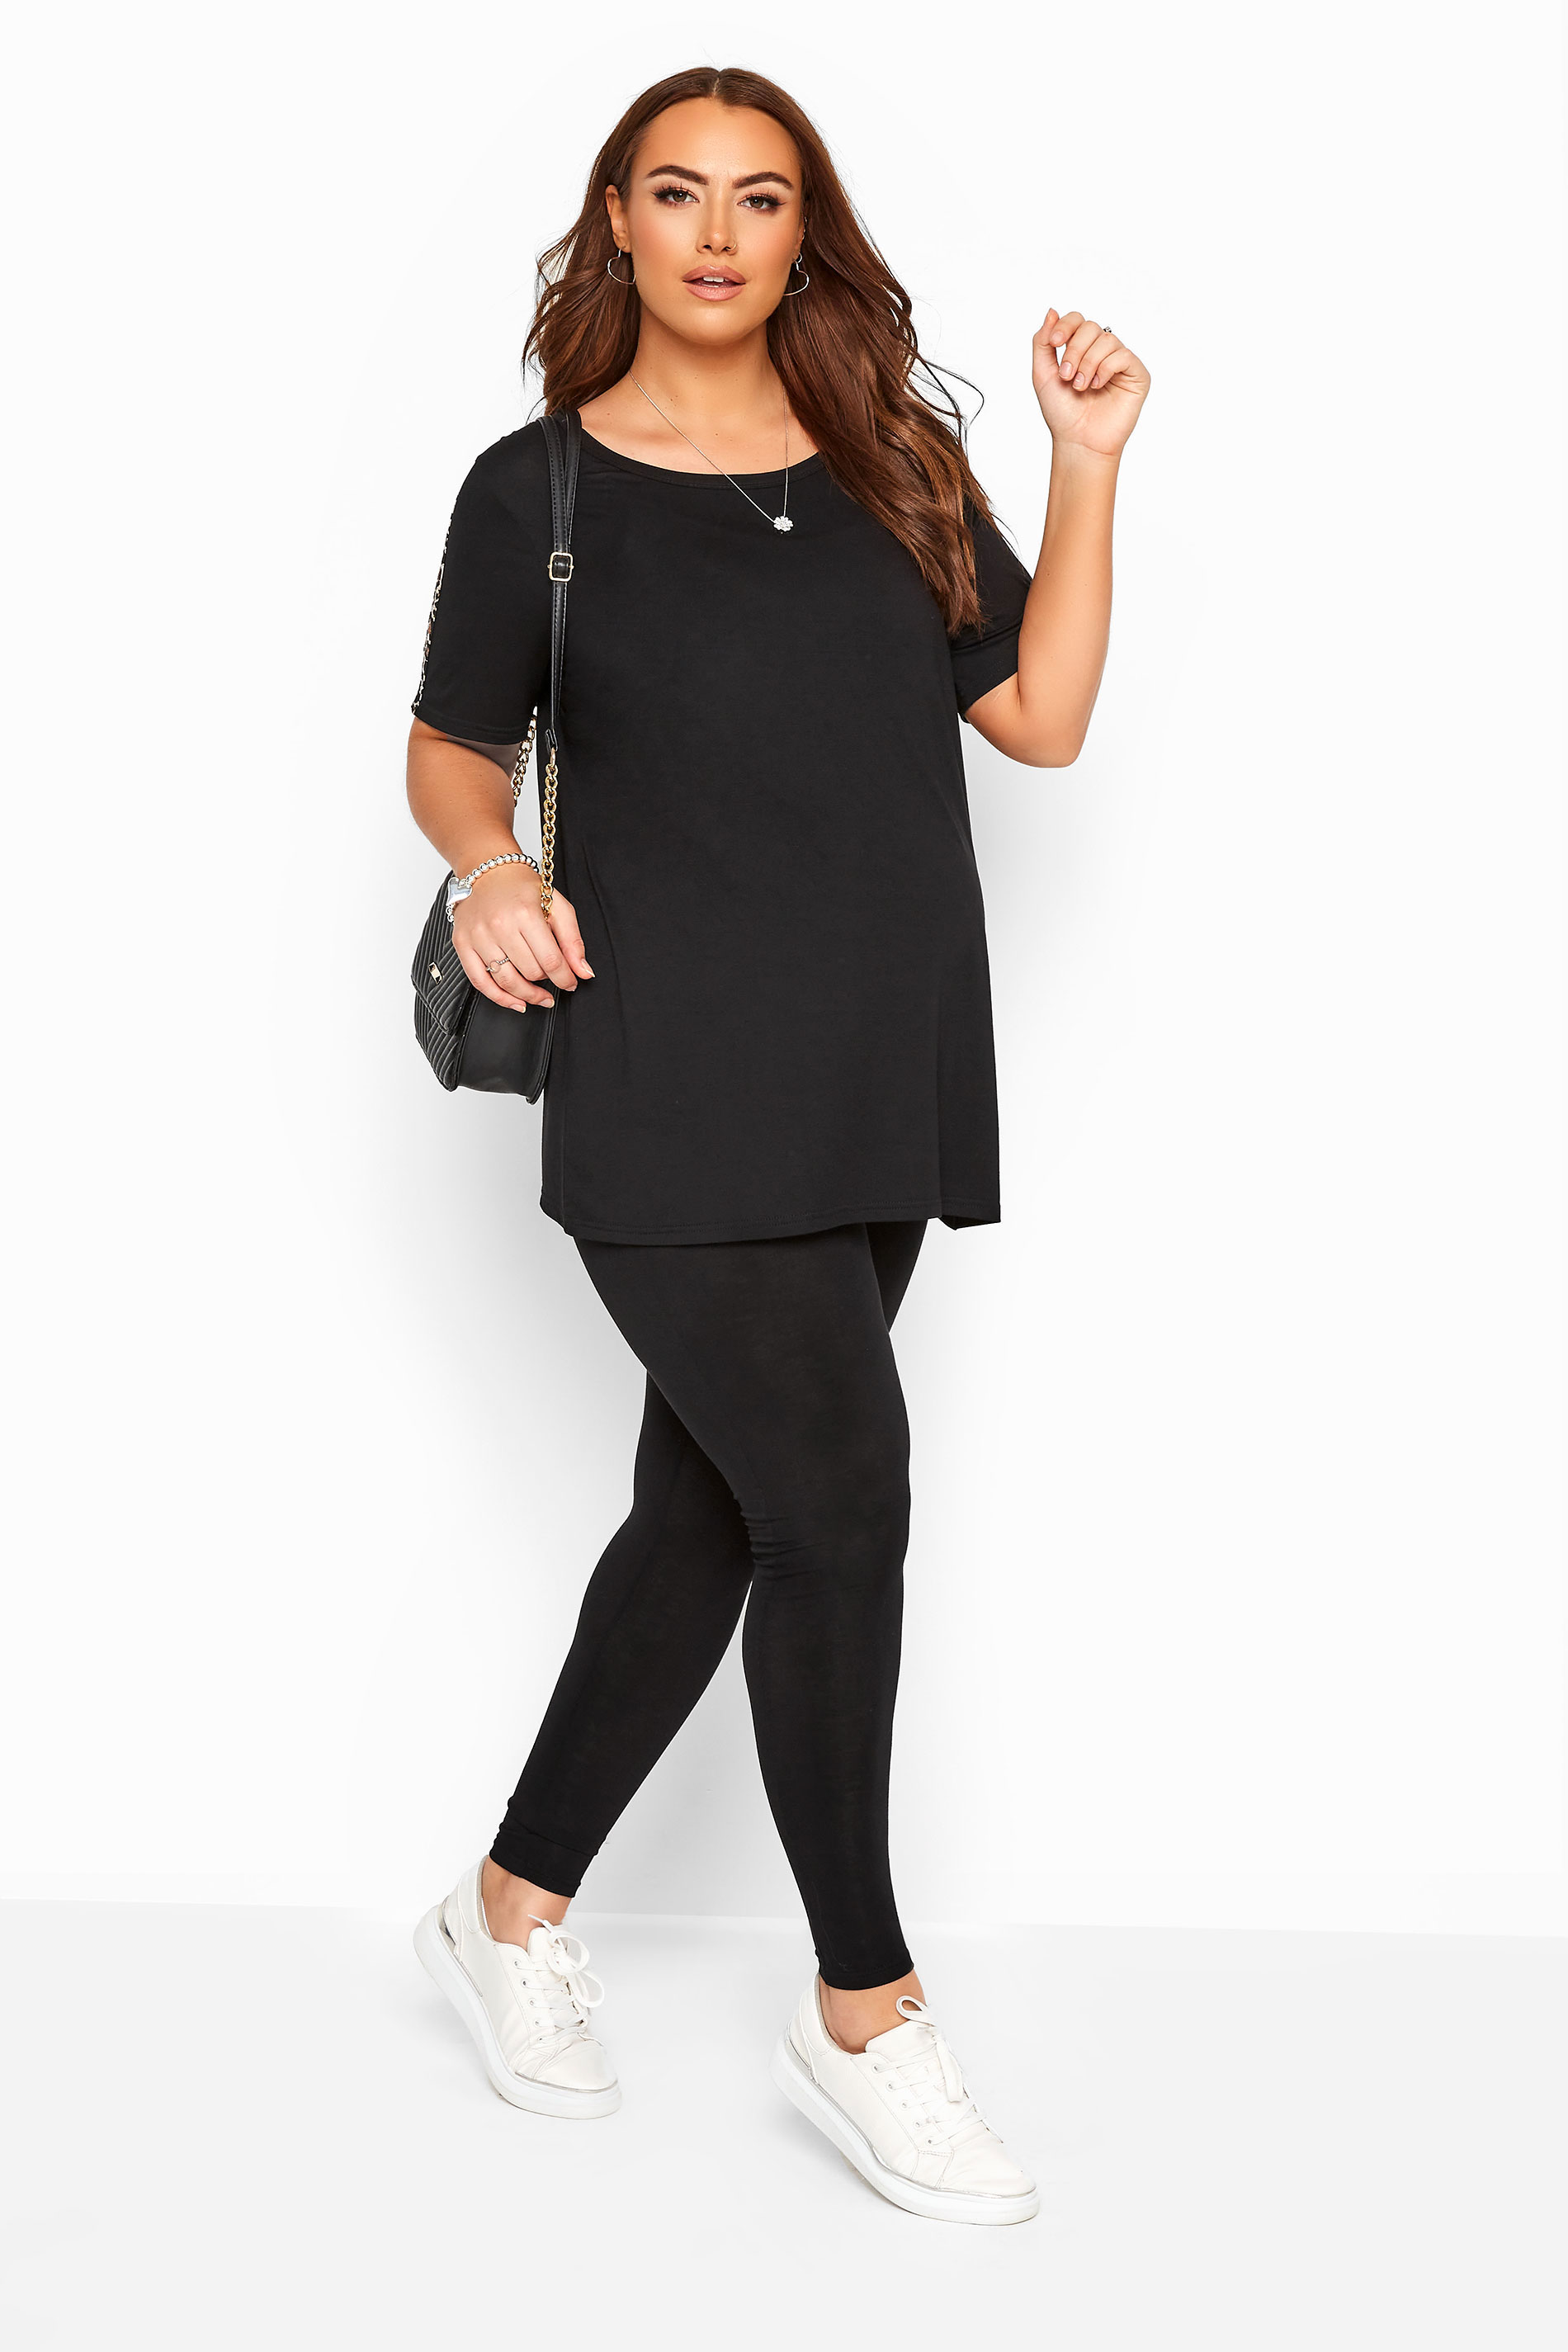 BUMP IT UP MATERNITY Black Jersey Leggings